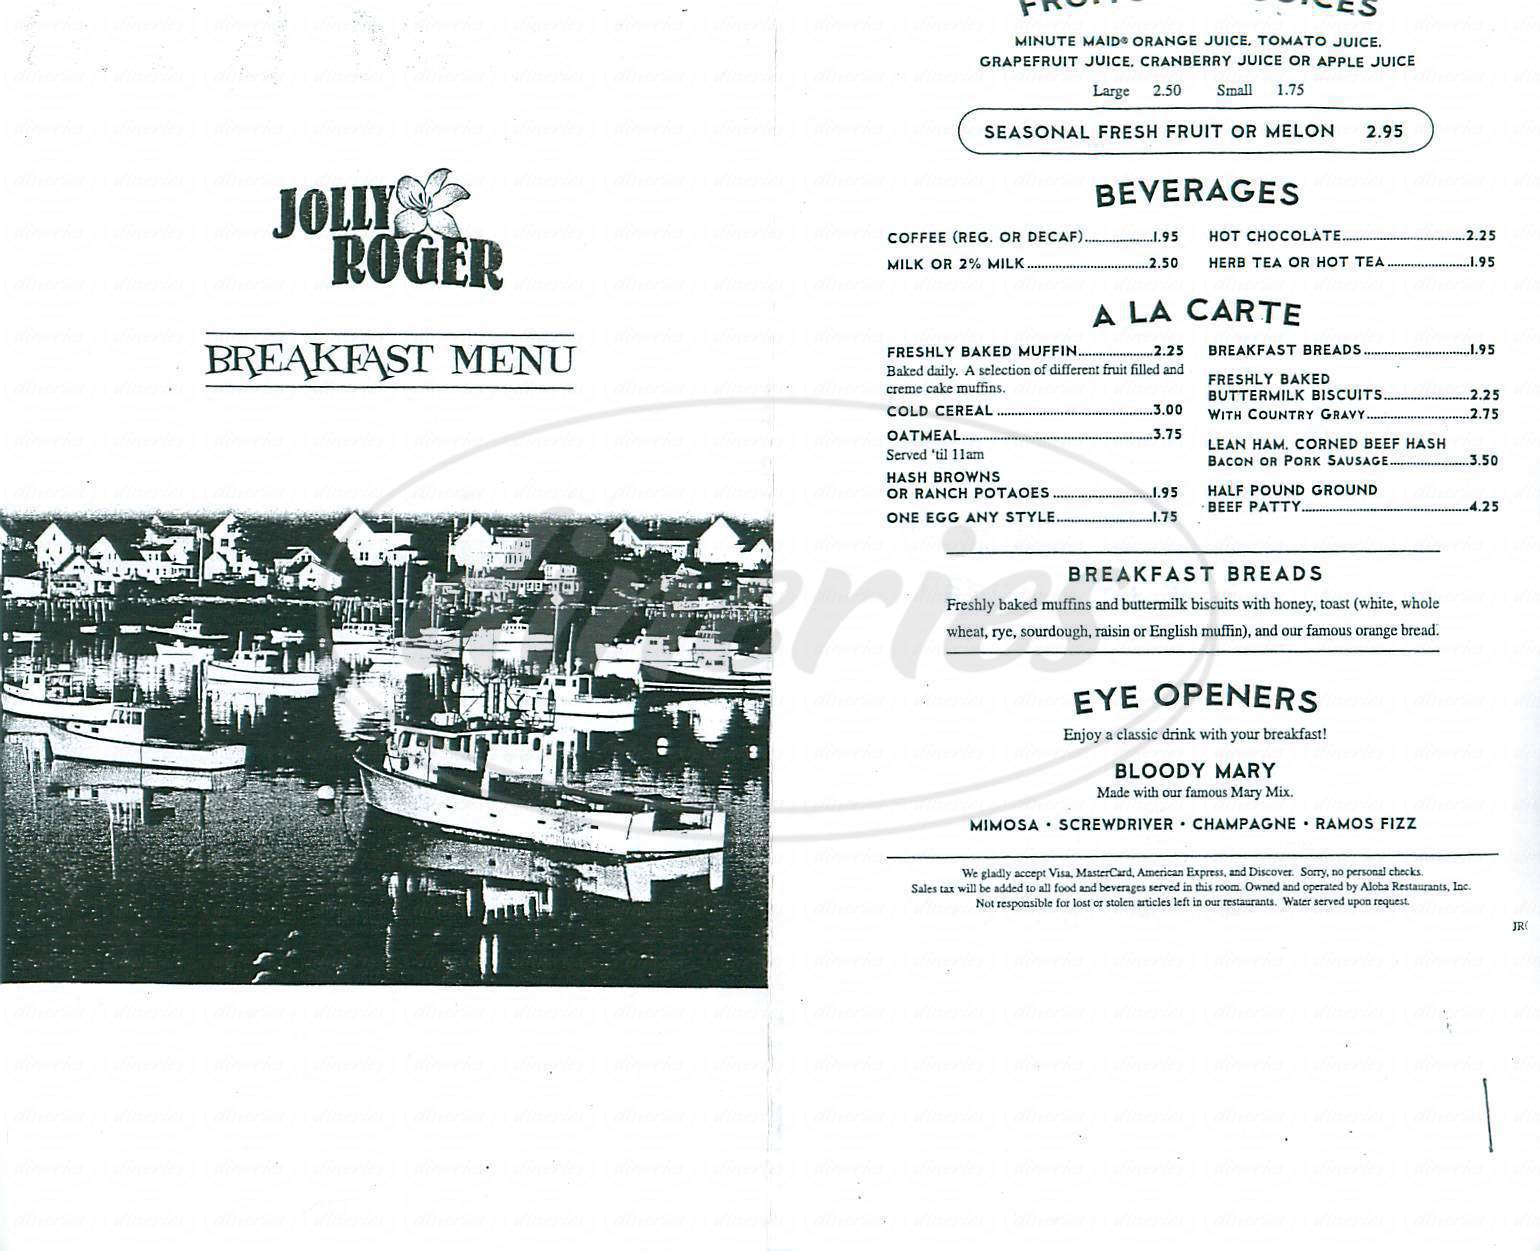 menu for Jolly Roger Restaurant